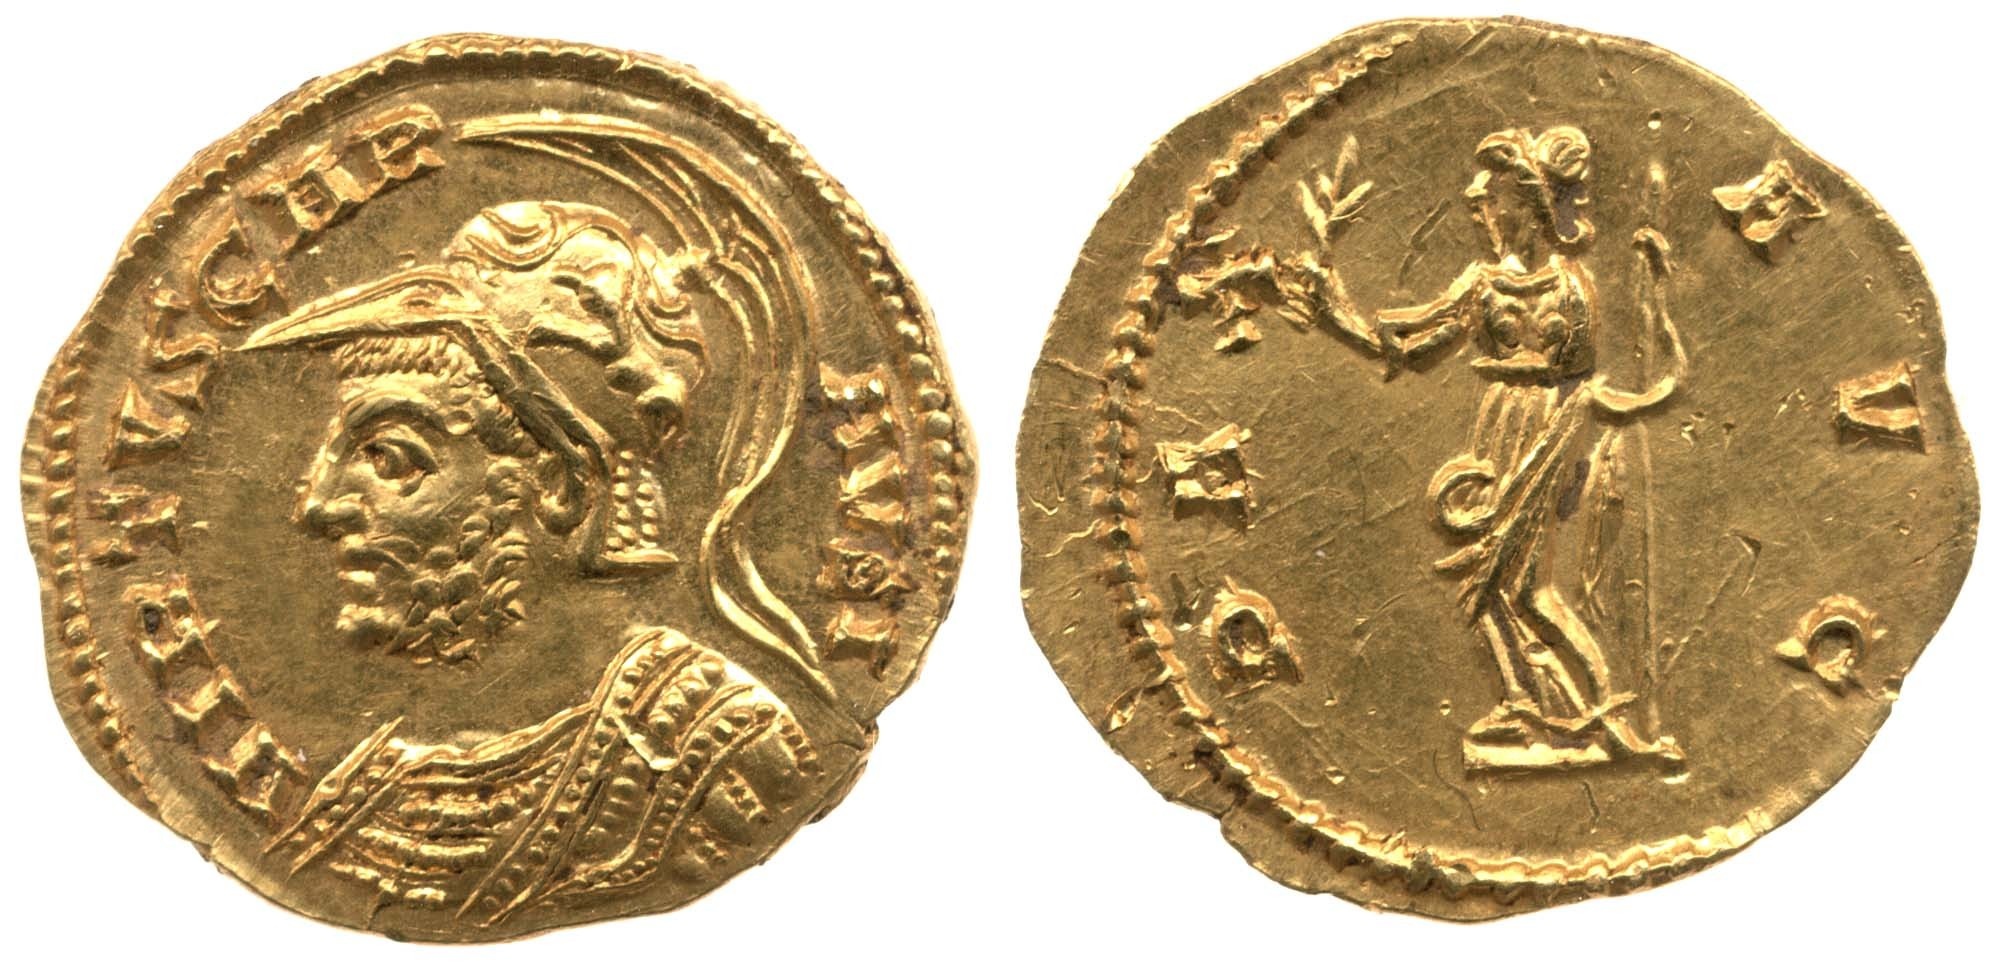 An Aureus of Carausius, minted at London